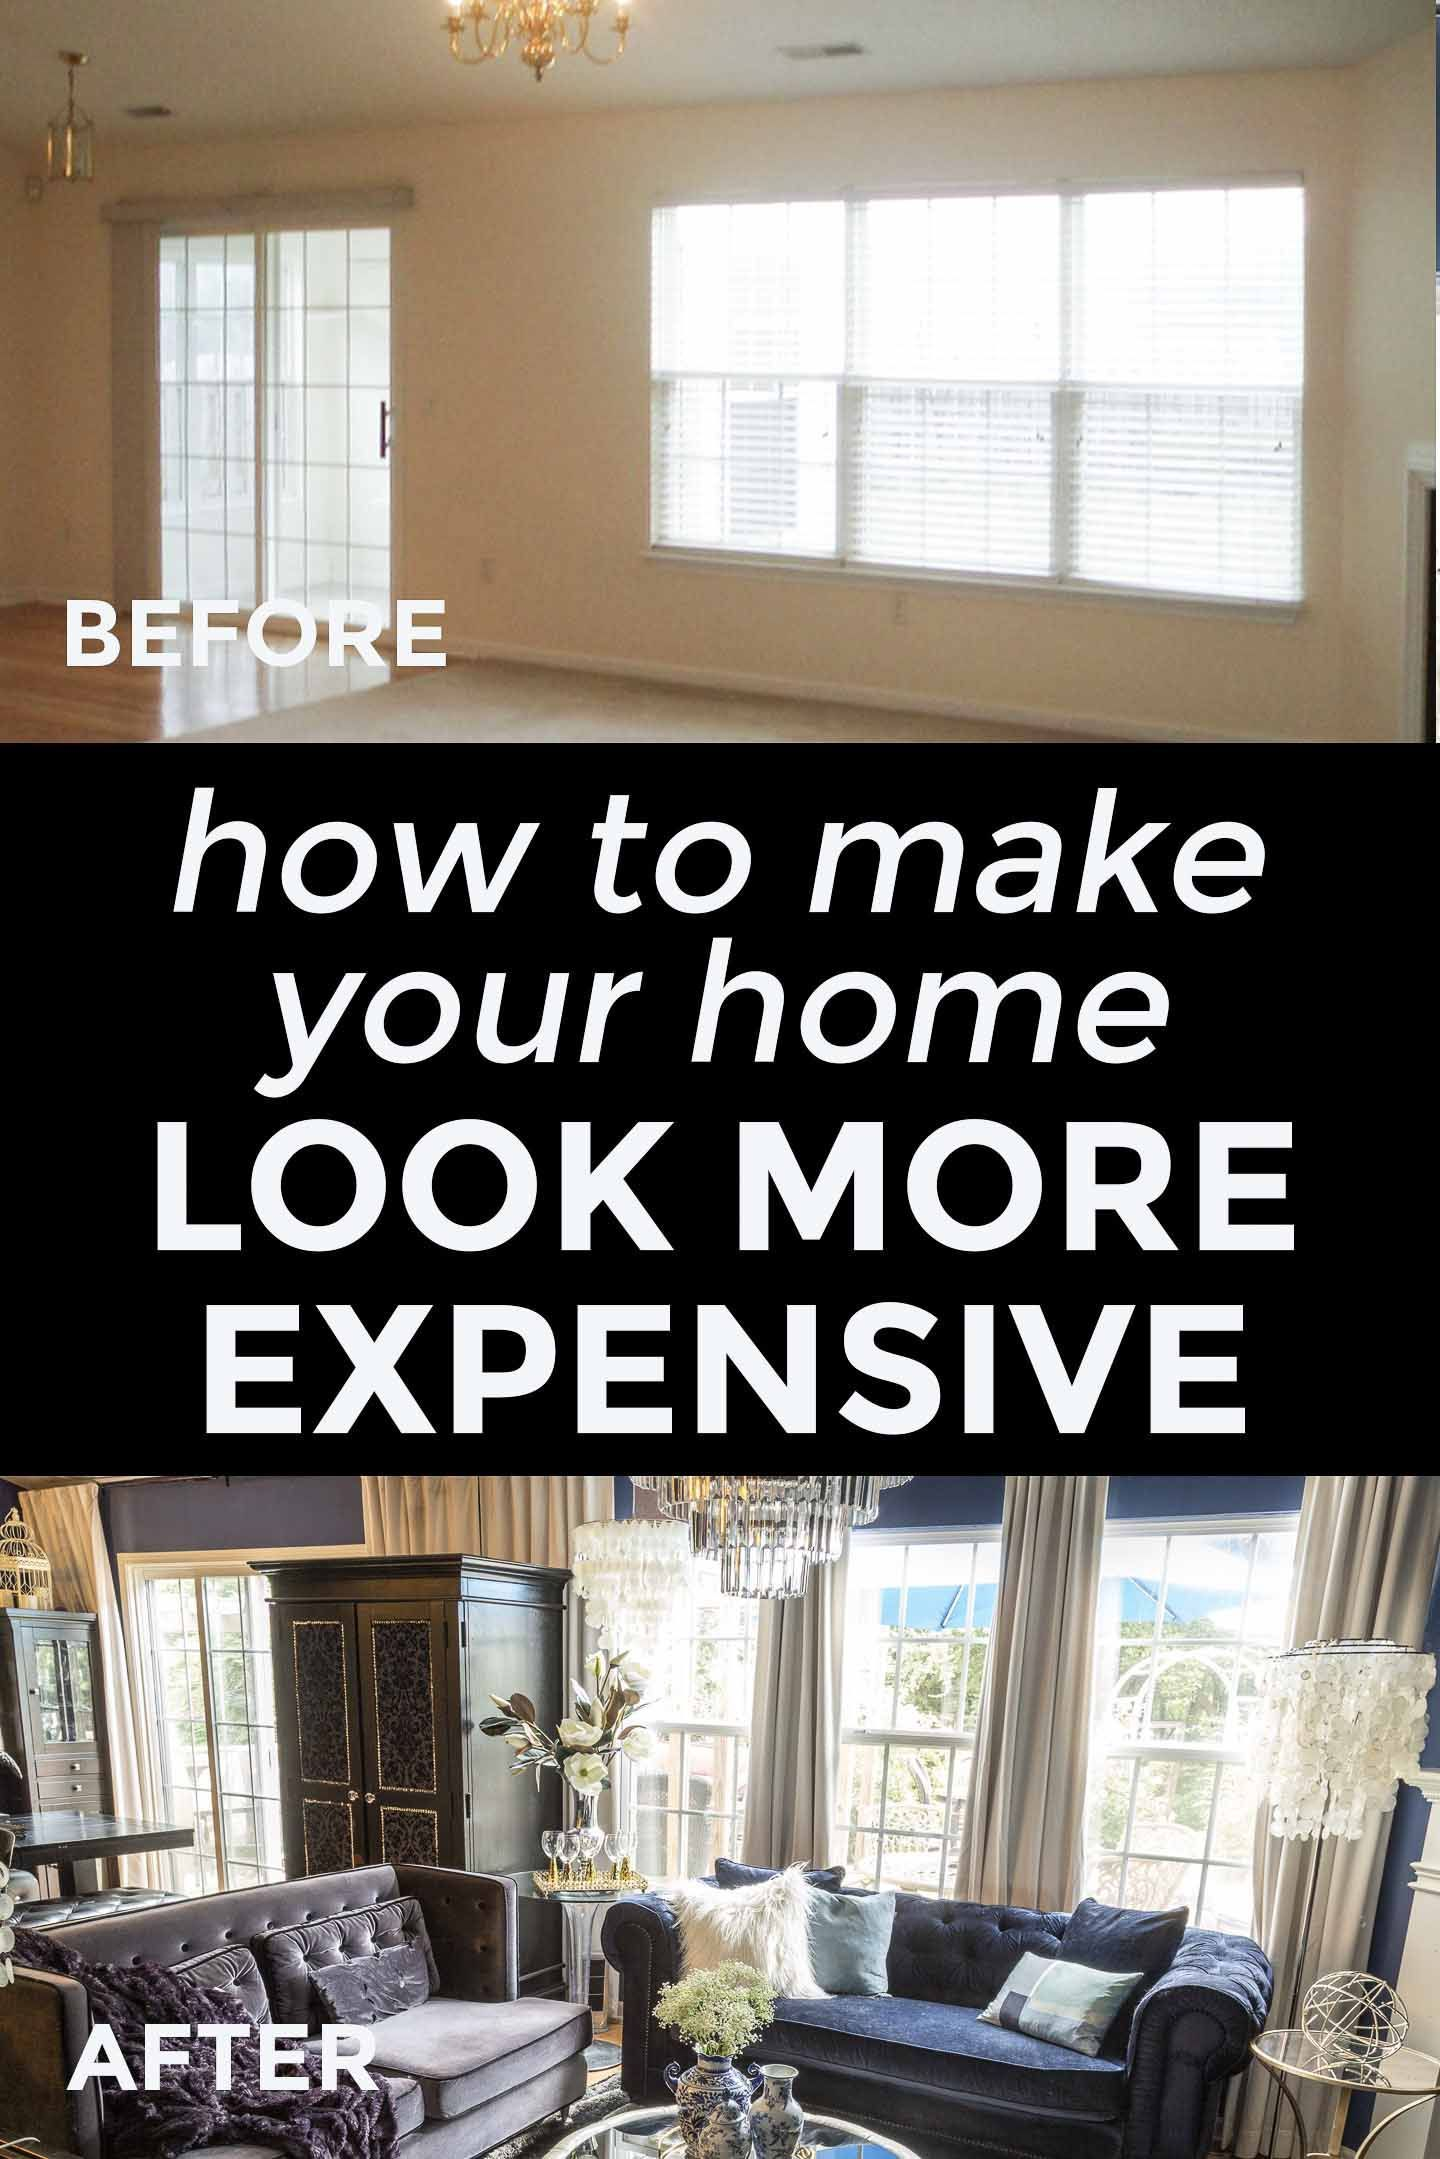 10 Easy Ways To Make Your House Look More Expensive In